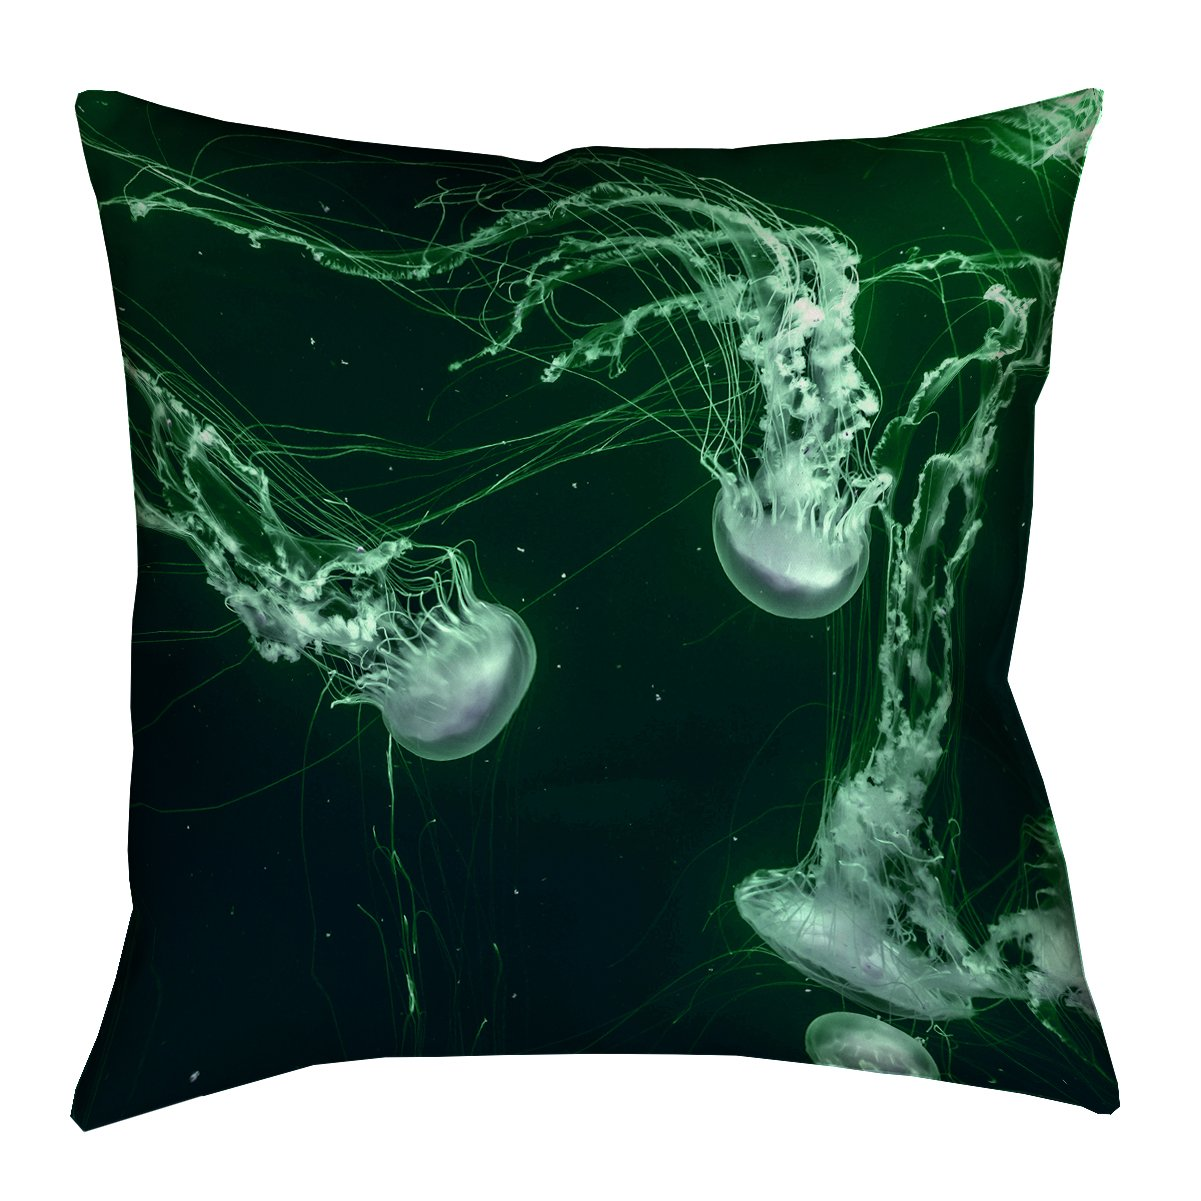 ArtVerse Katelyn Smith Green Jellyfish x Floor Pillows Double Sided Print with Concealed Zipper & Insert, 28